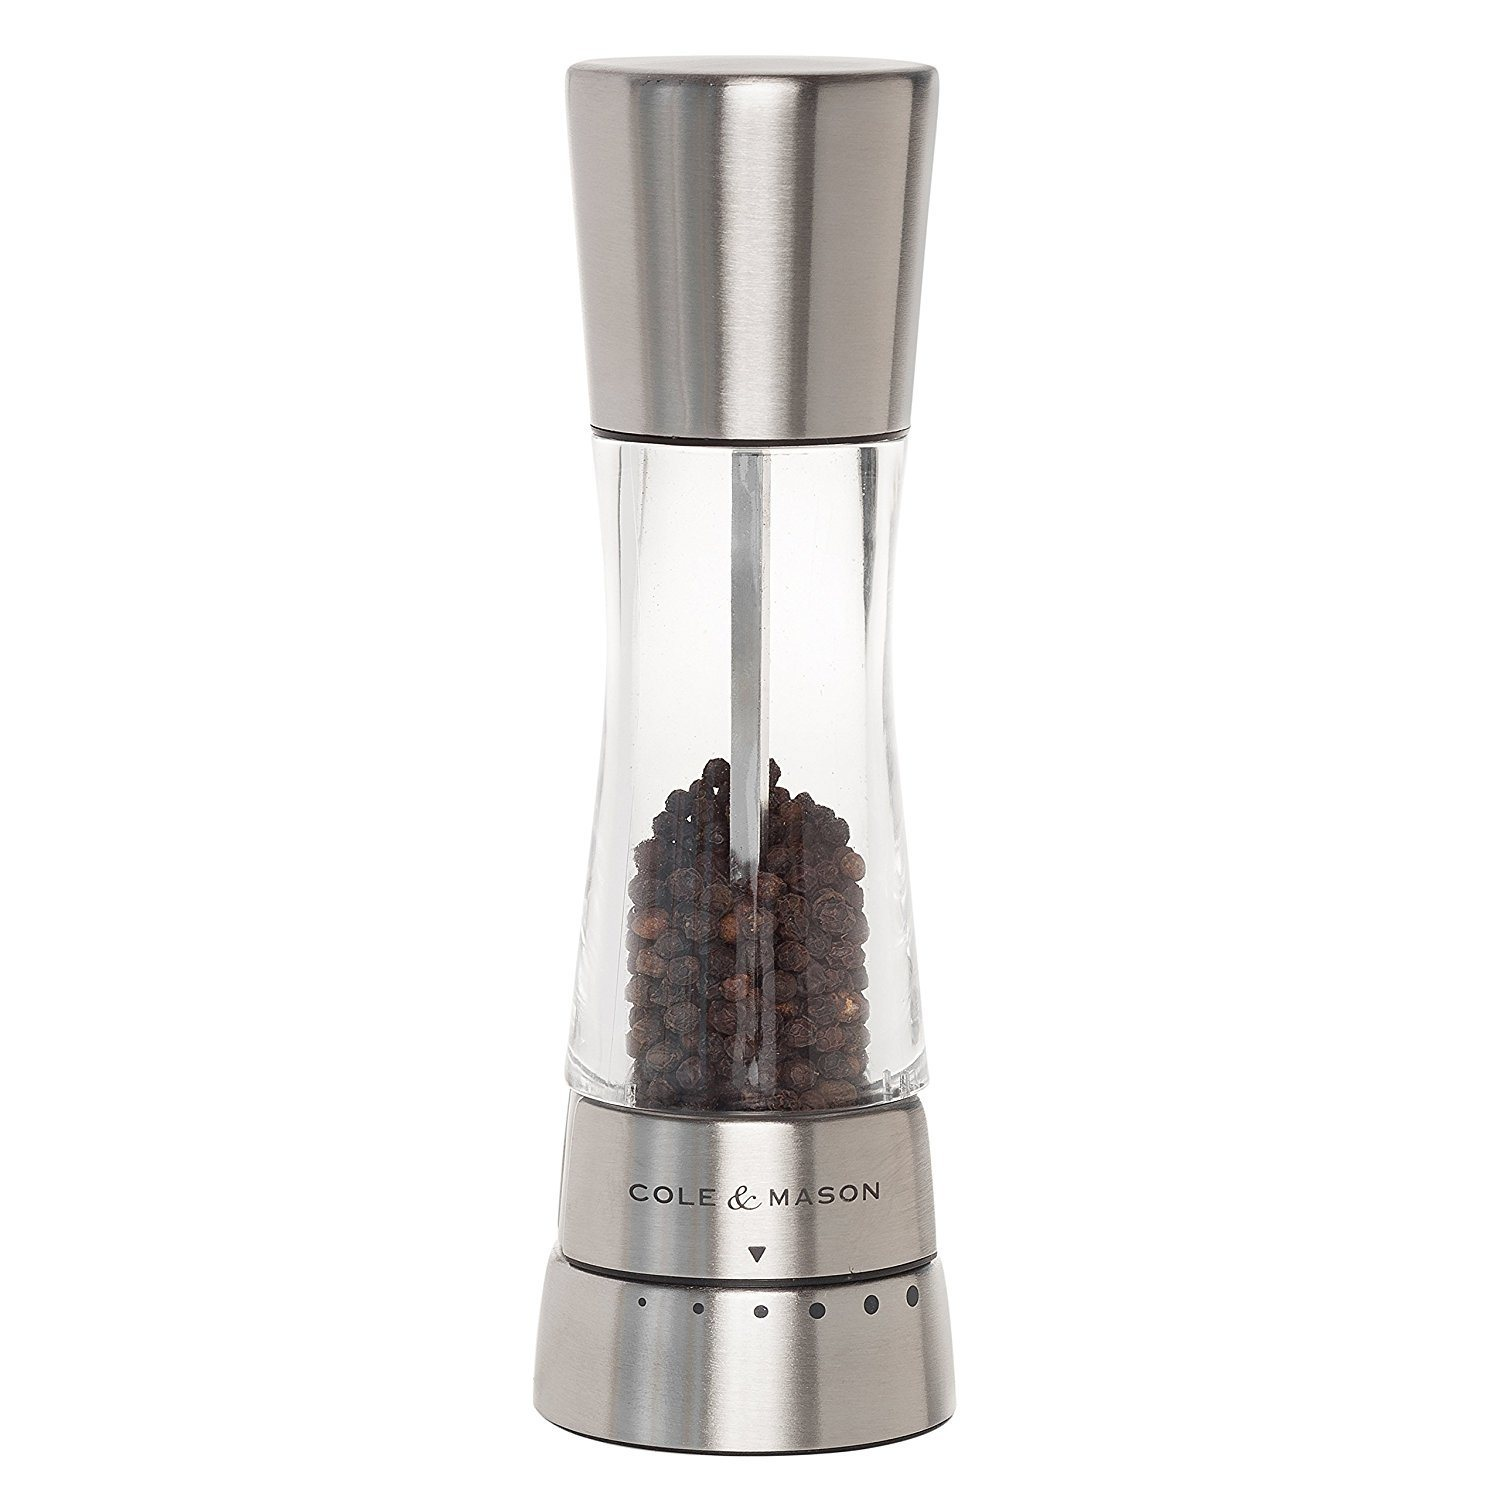 Cole & Mason Pepper Mill